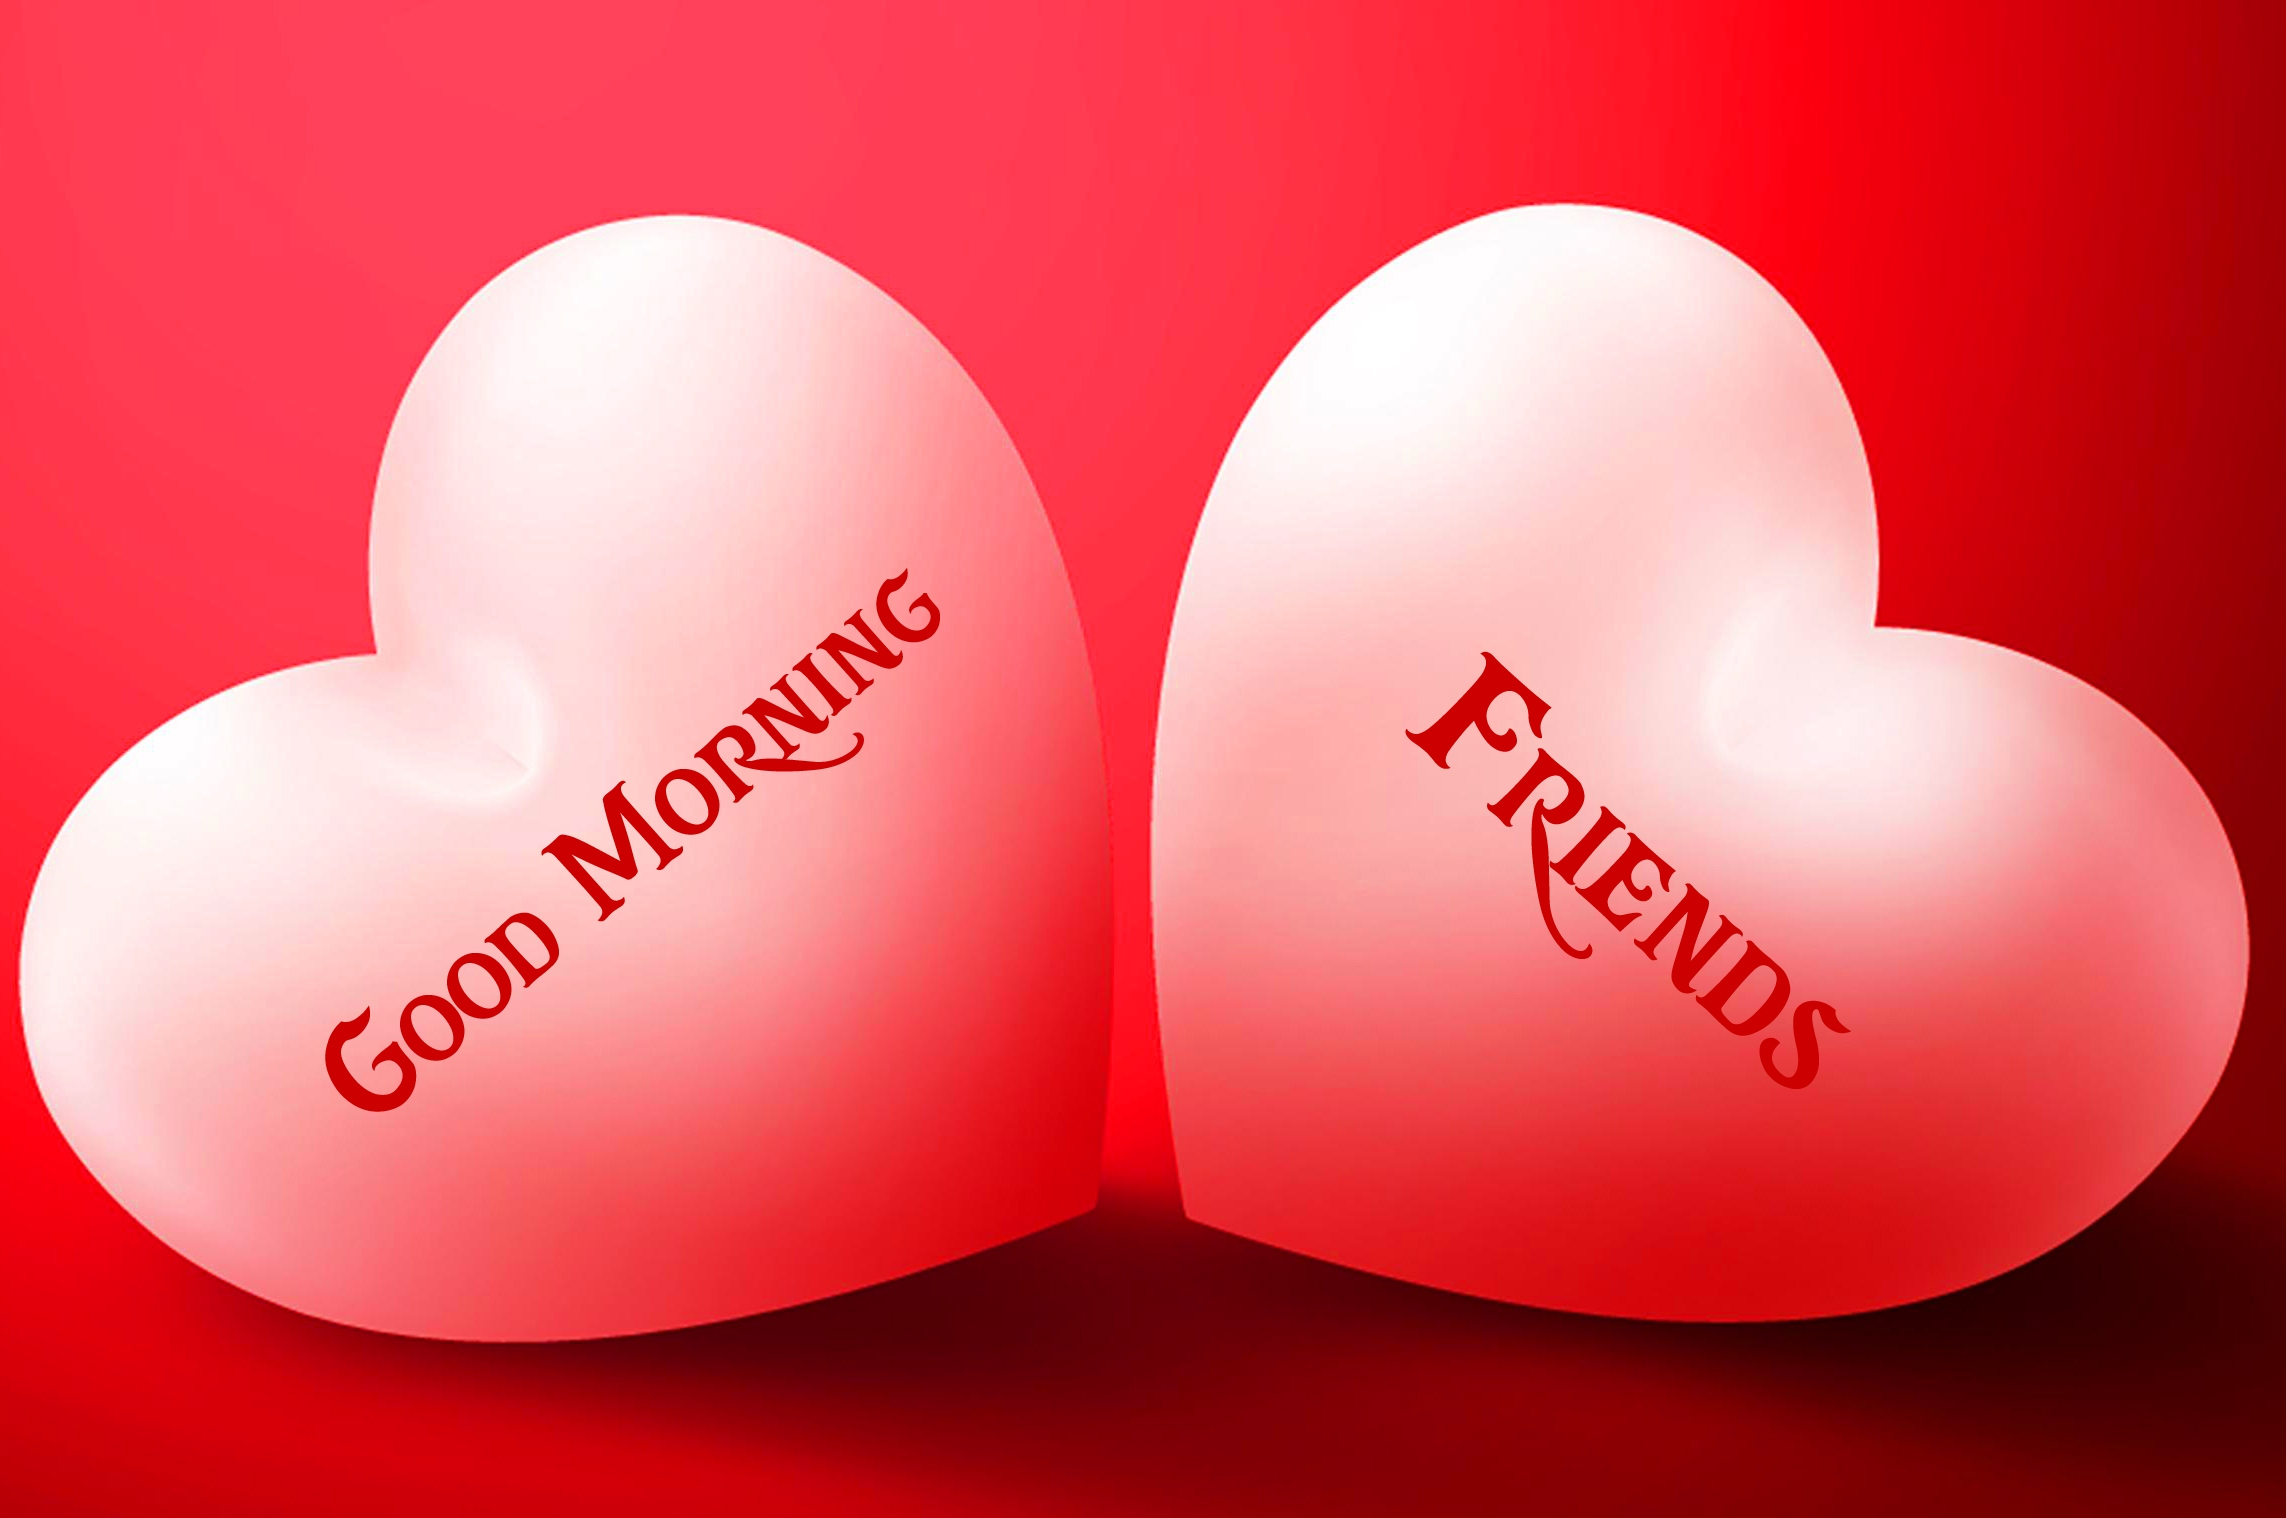 Good Morning Friends Images Wallpaper pics for Facebook